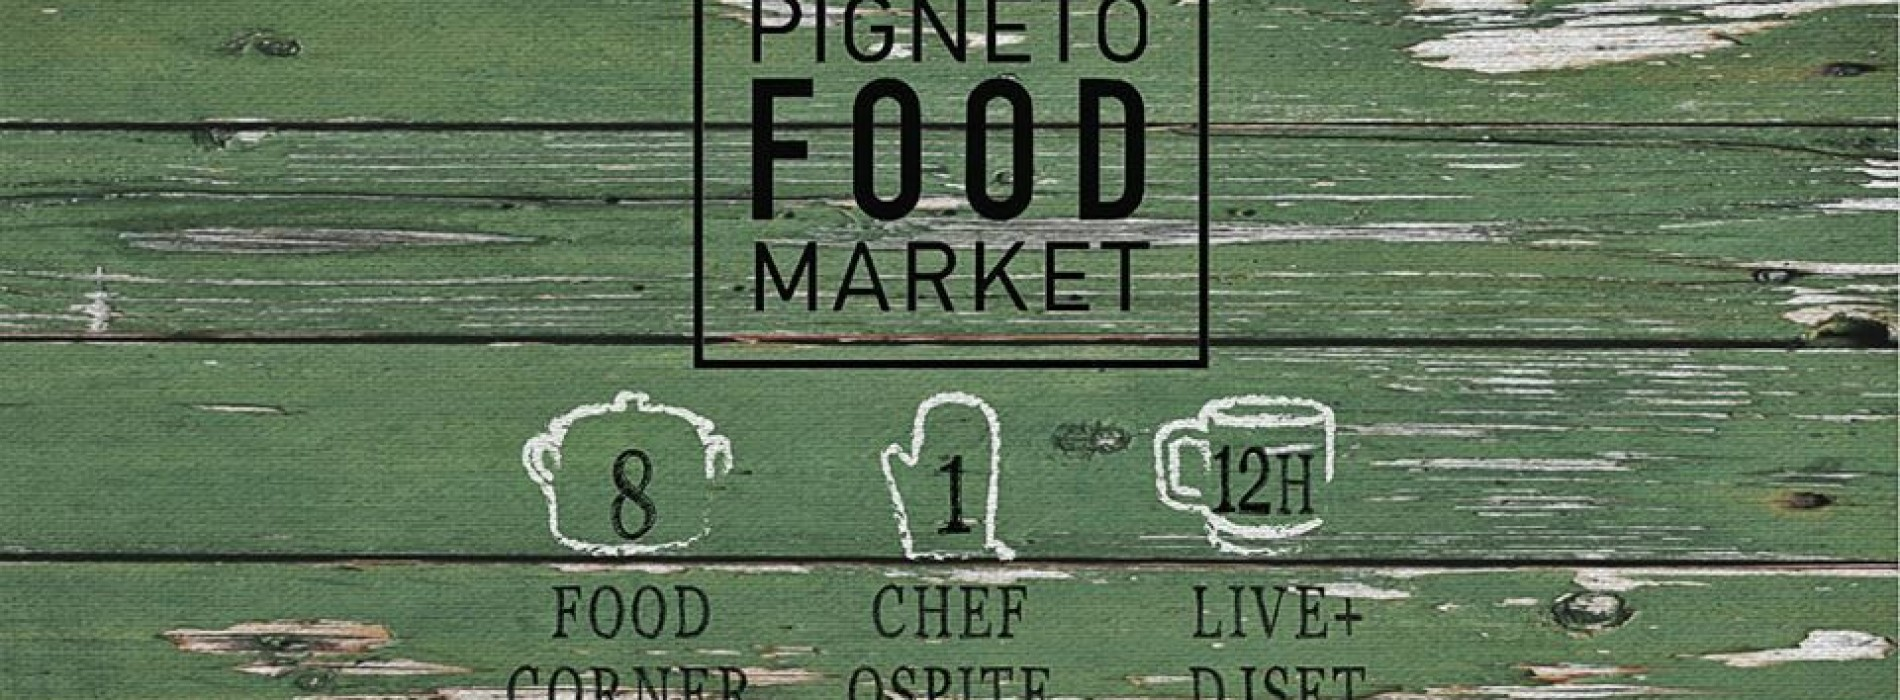 Annette Food Market Restaurant Menu